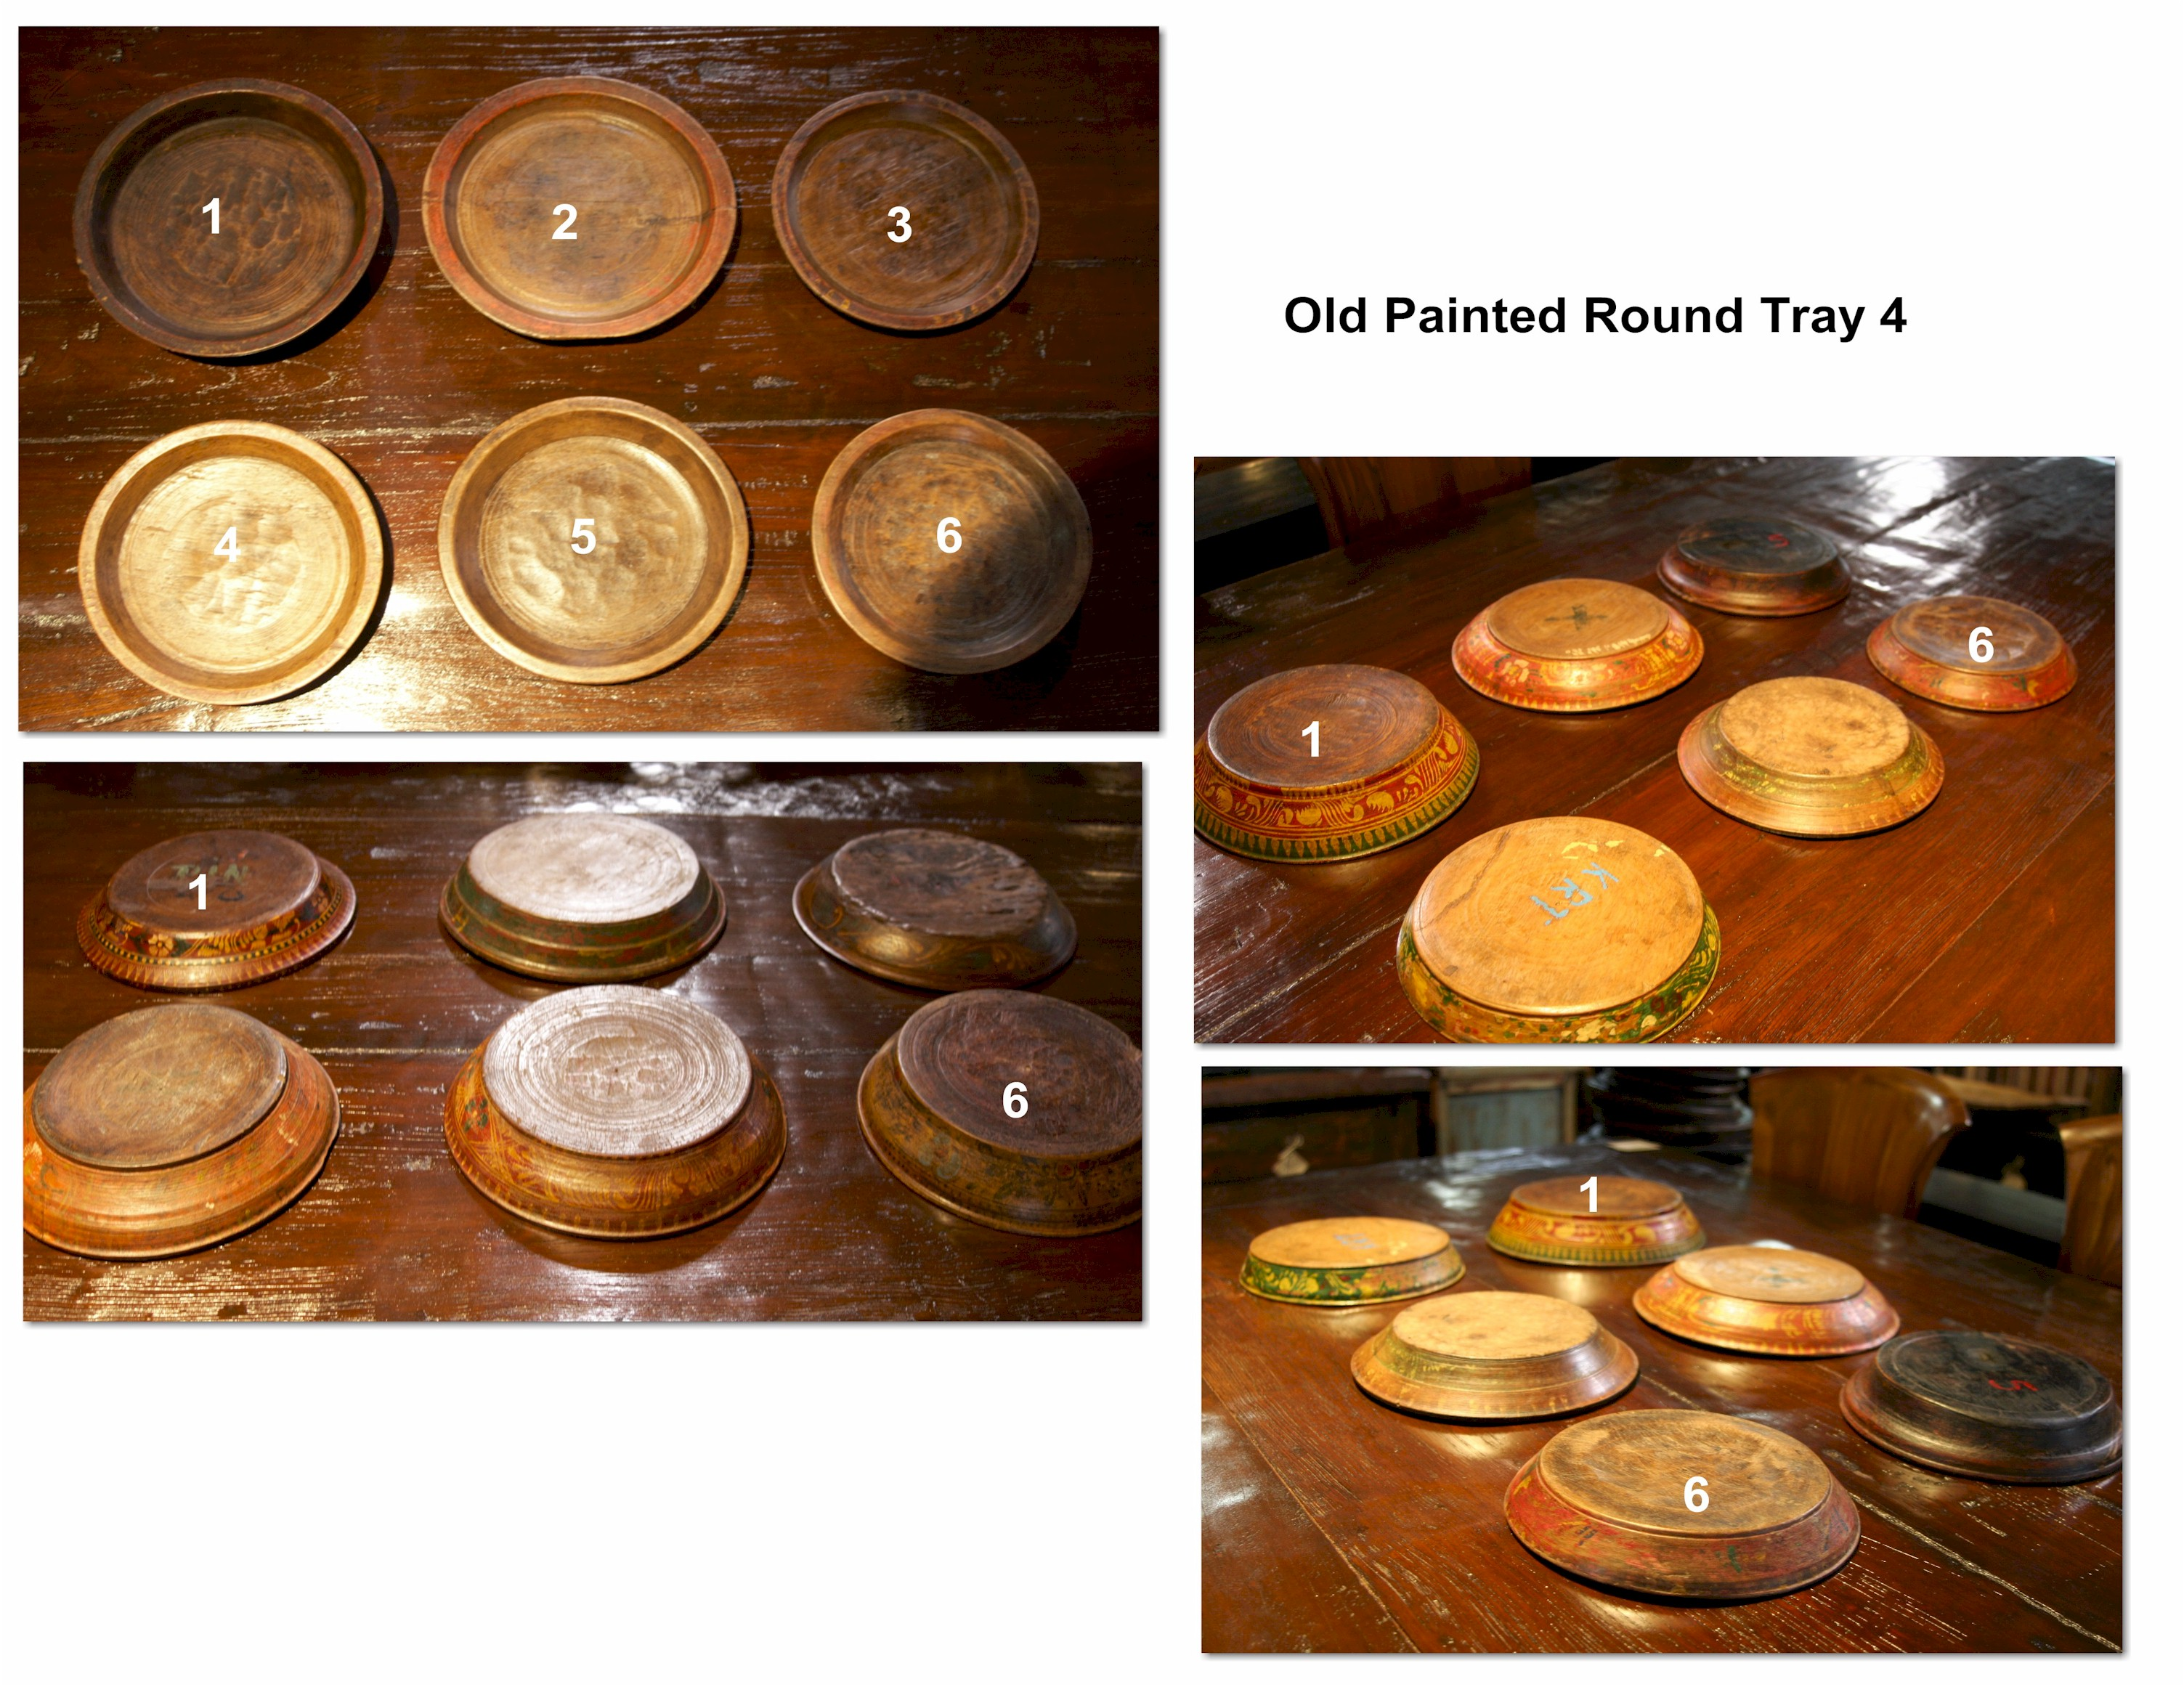 Old Painted Round Tray 4